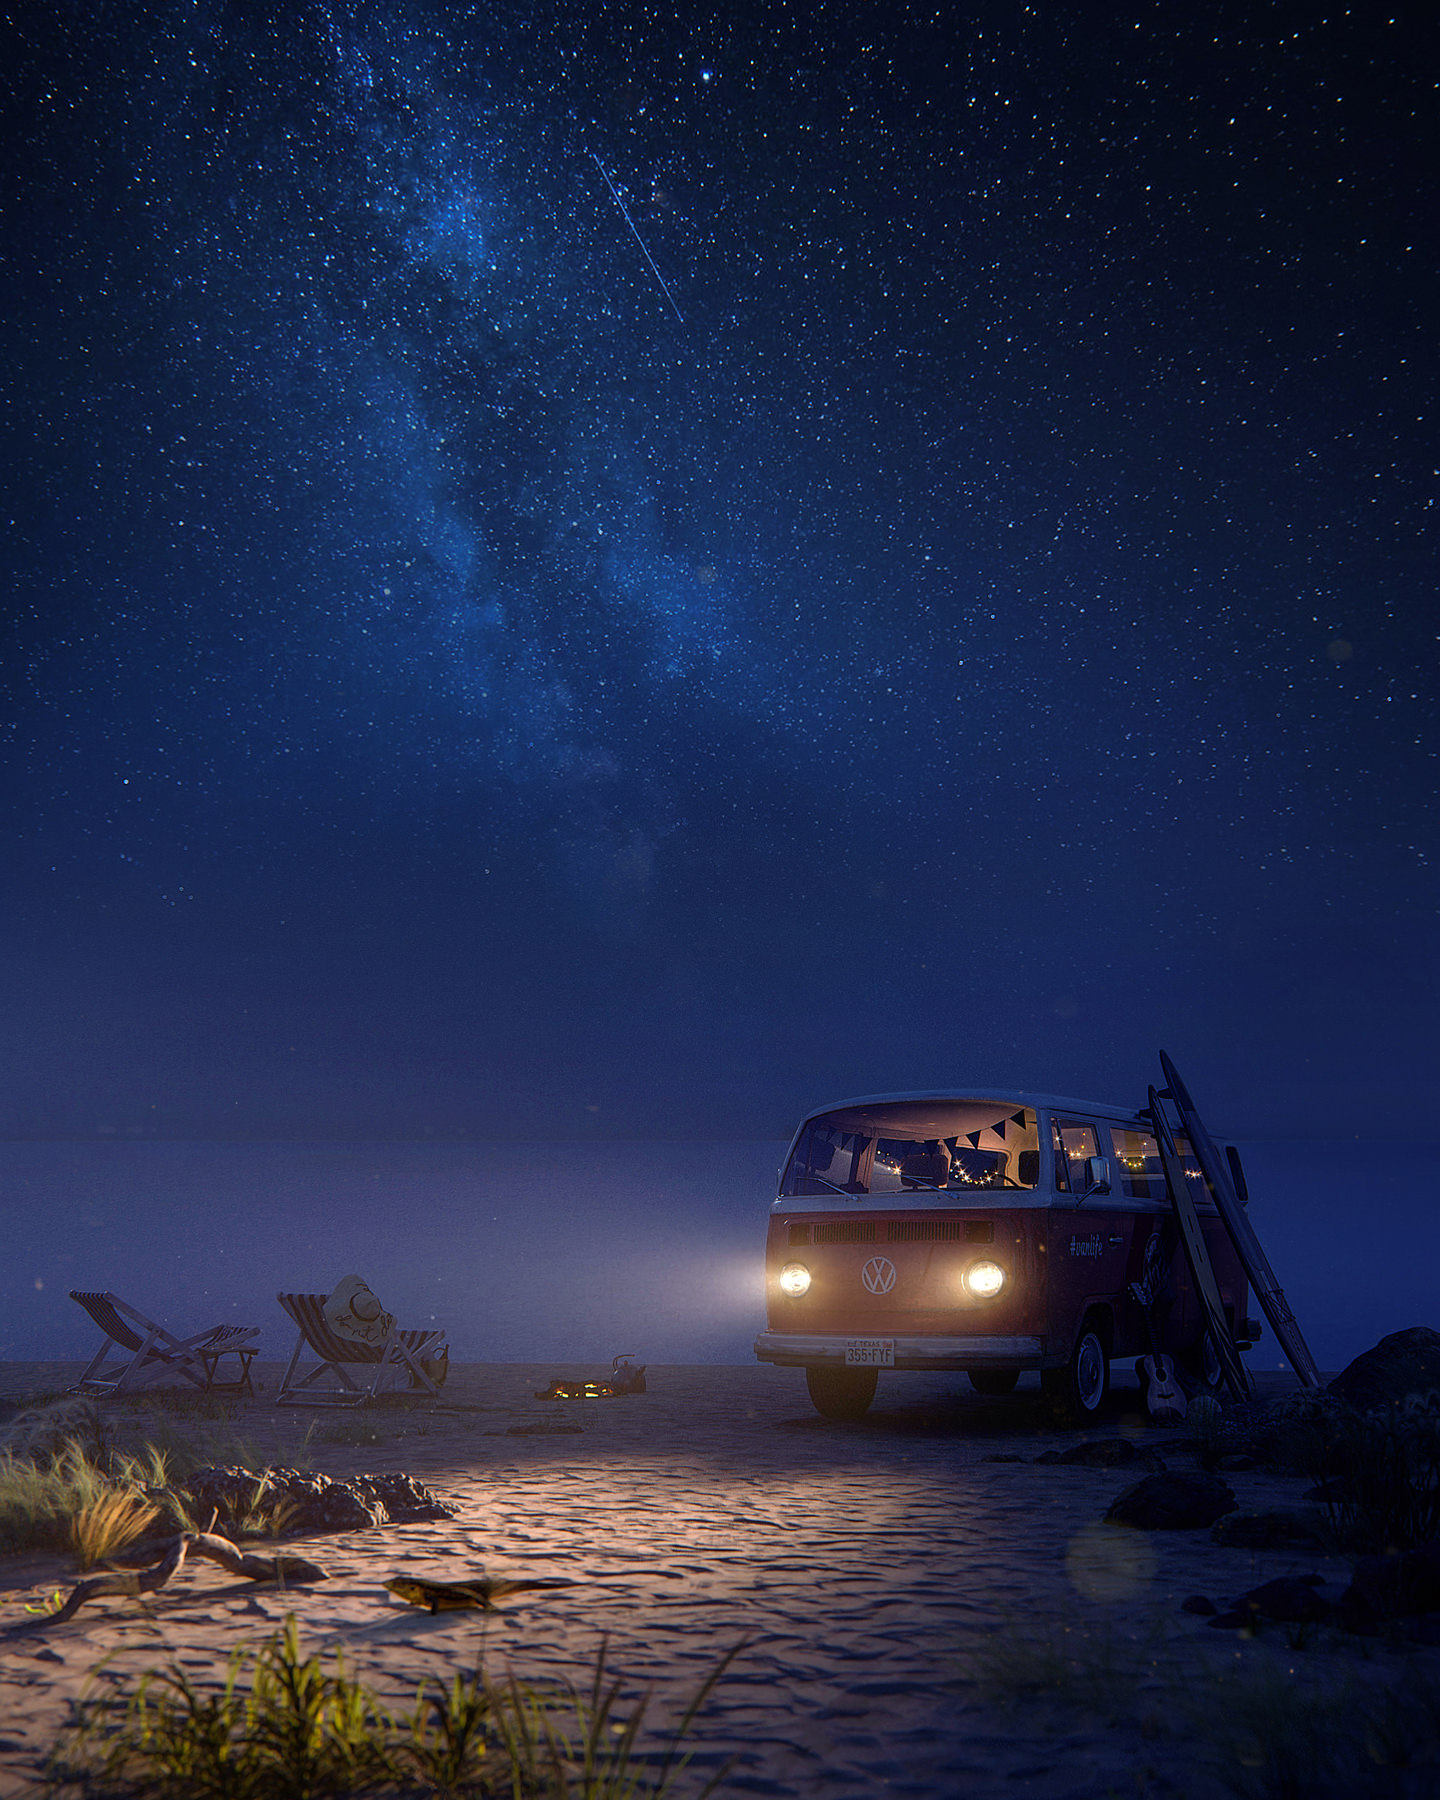 3D rendering of a red vintage van with headlamps illuminating the sand beach under the sky full of stars